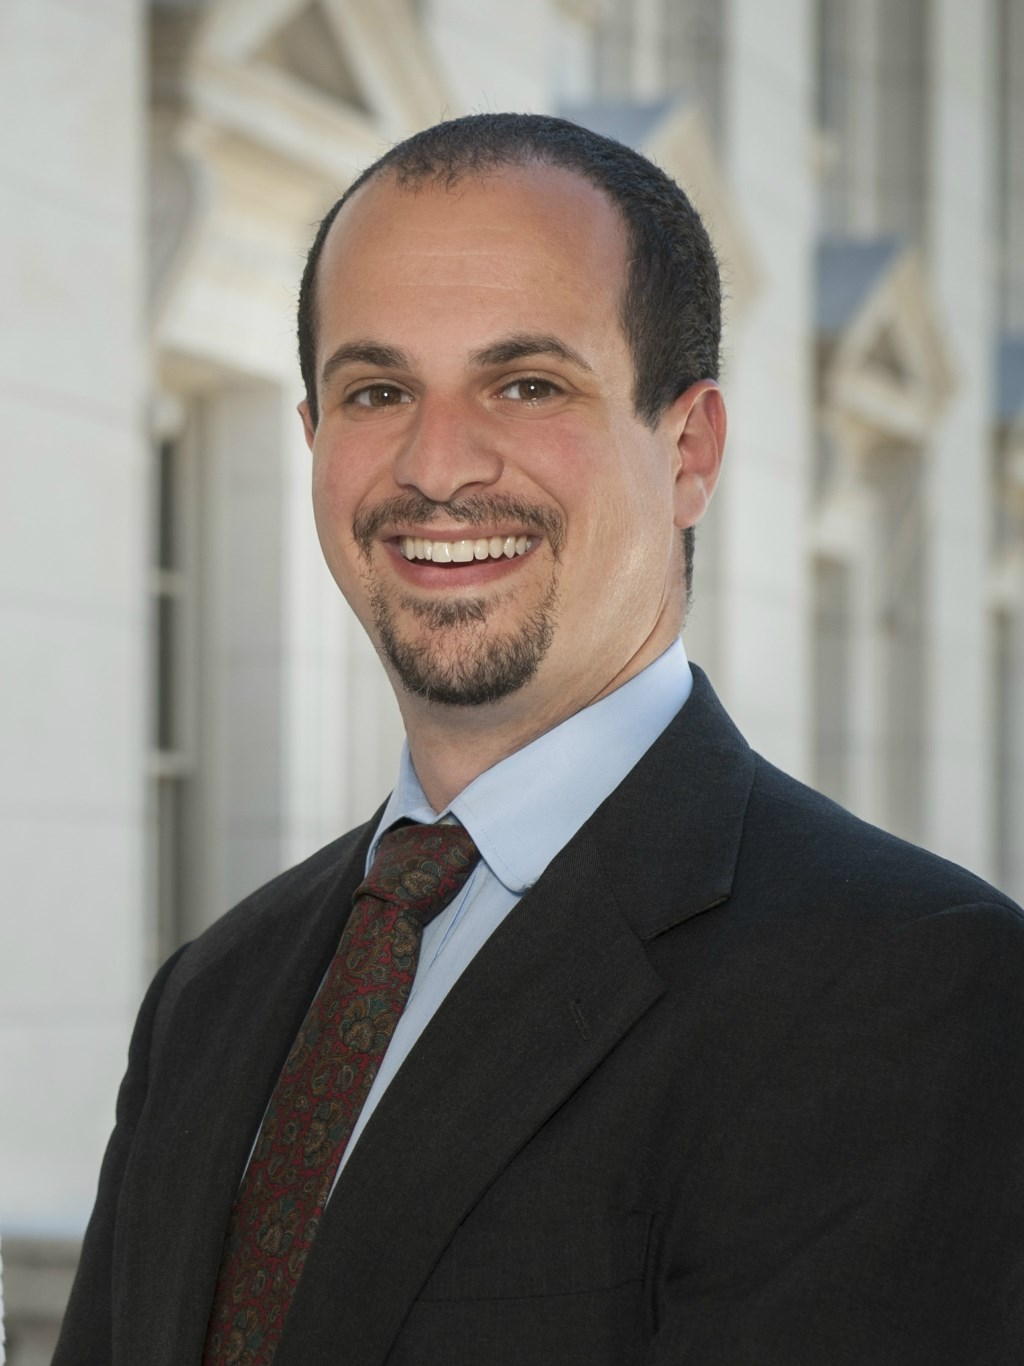 National Association of Social Workers, Wisconsin Chapter to Present State Representative Jonathan Brostoff with Public Service Award